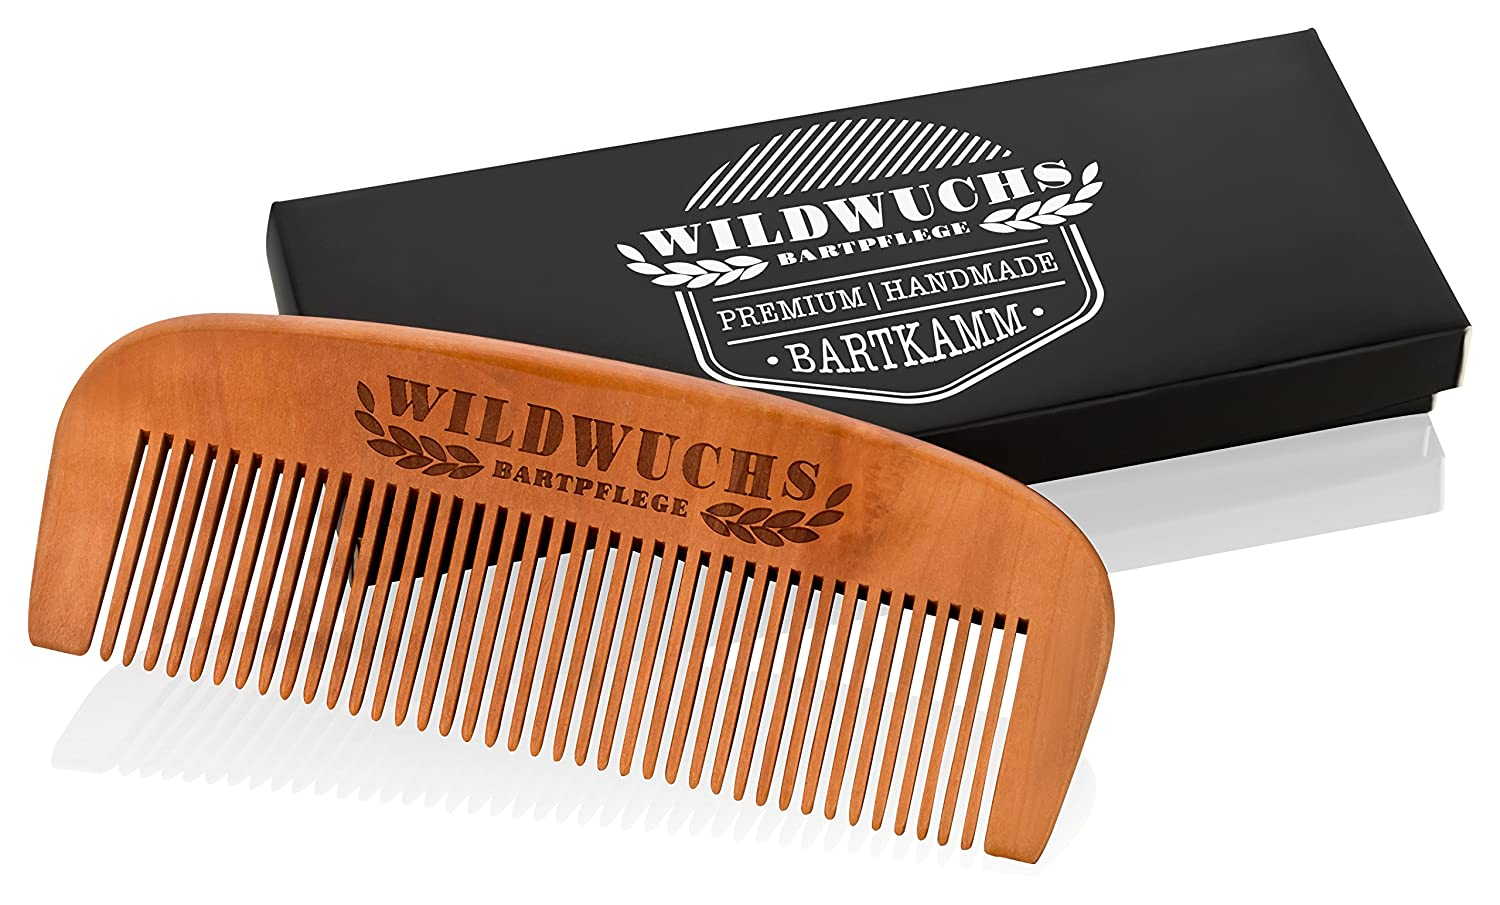 Beard Comb made from high quality pear wood - Handmade by Wildwuchs Bartpflege - wooden comb for beard care in a gift box for men grooming and styling